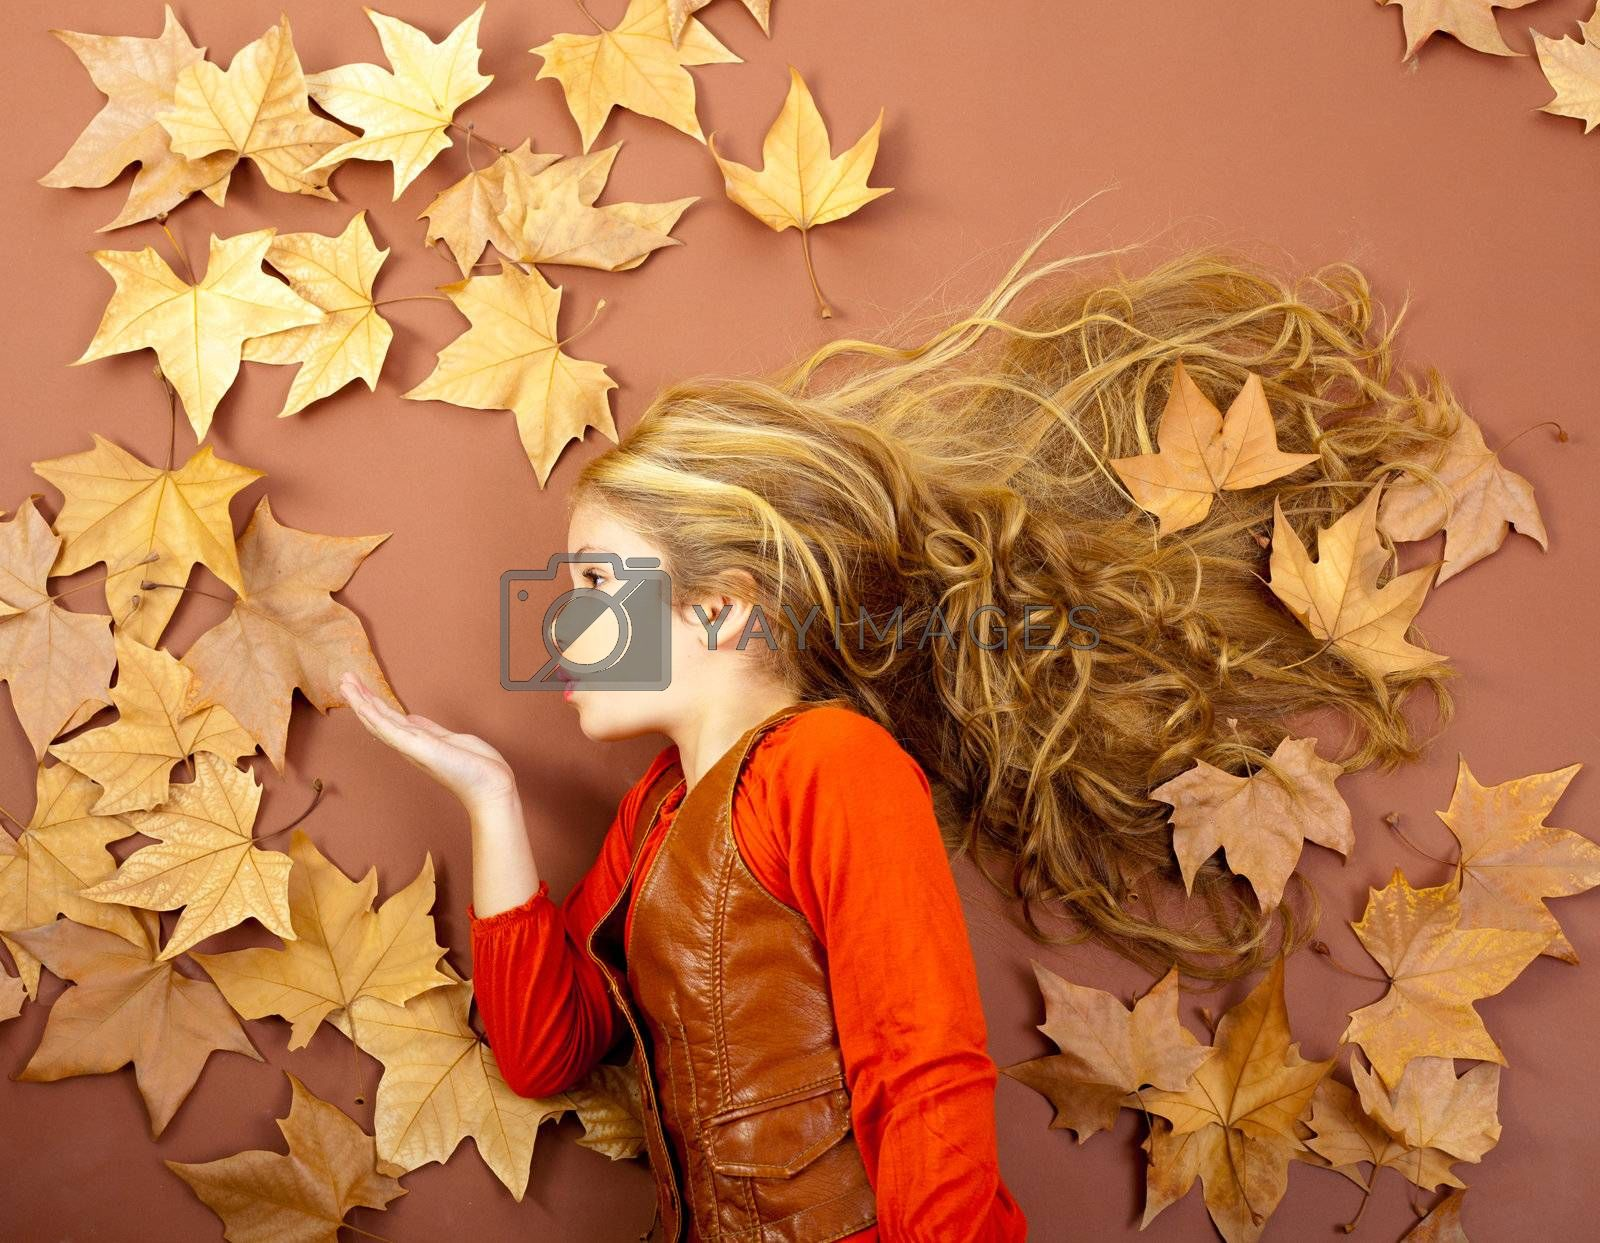 Autumn Girl On Dried Leaves Blowing Wind Lips Royalty Free Stock Image Yayimages Royalty Free Stock Photos And Vectors